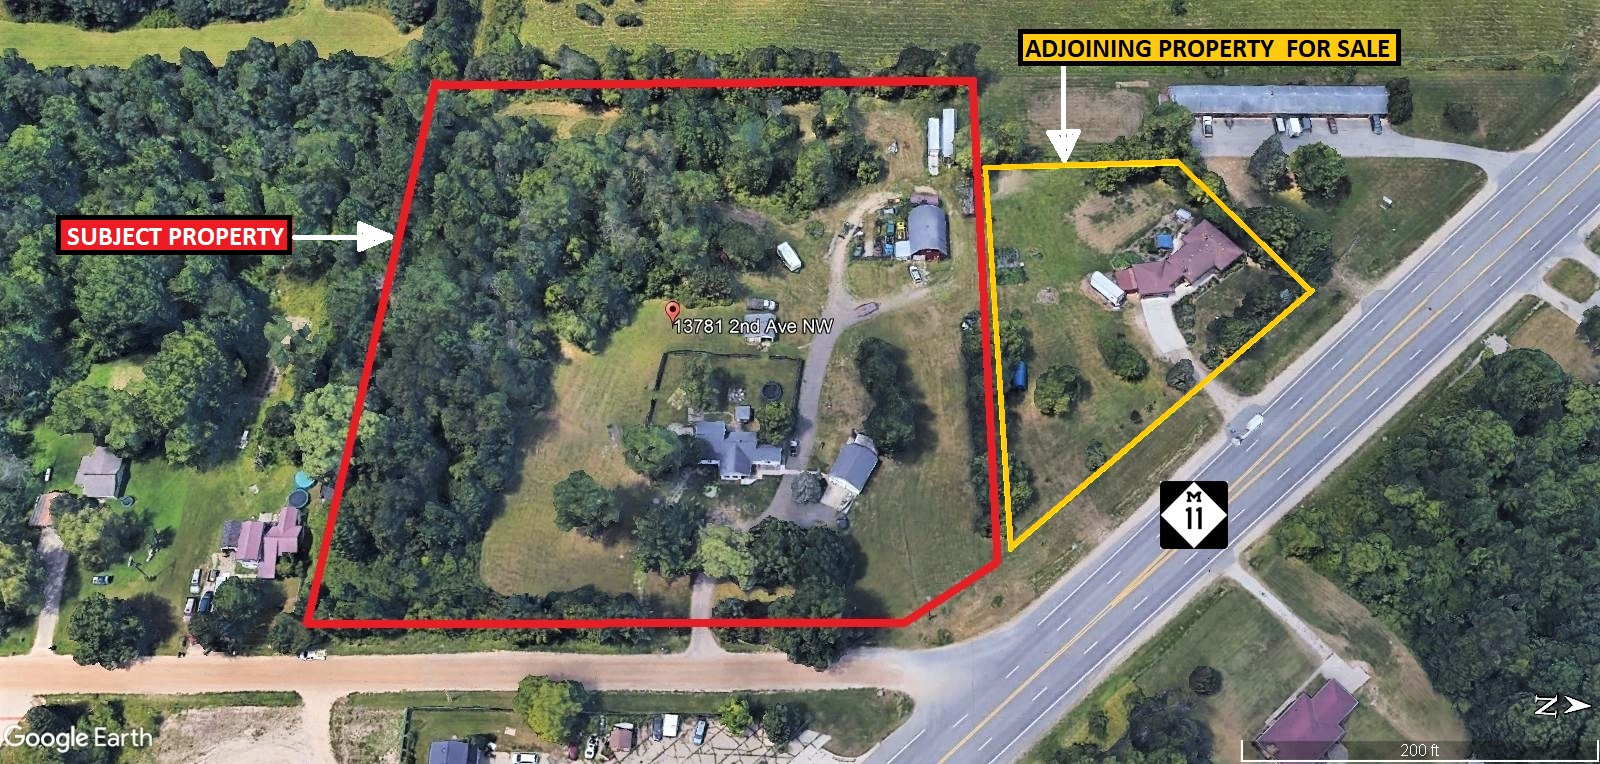 IRONWOOD DR (M-11)  5+ ACRE COMMERCIAL & INDUSTRIAL PARCELImage